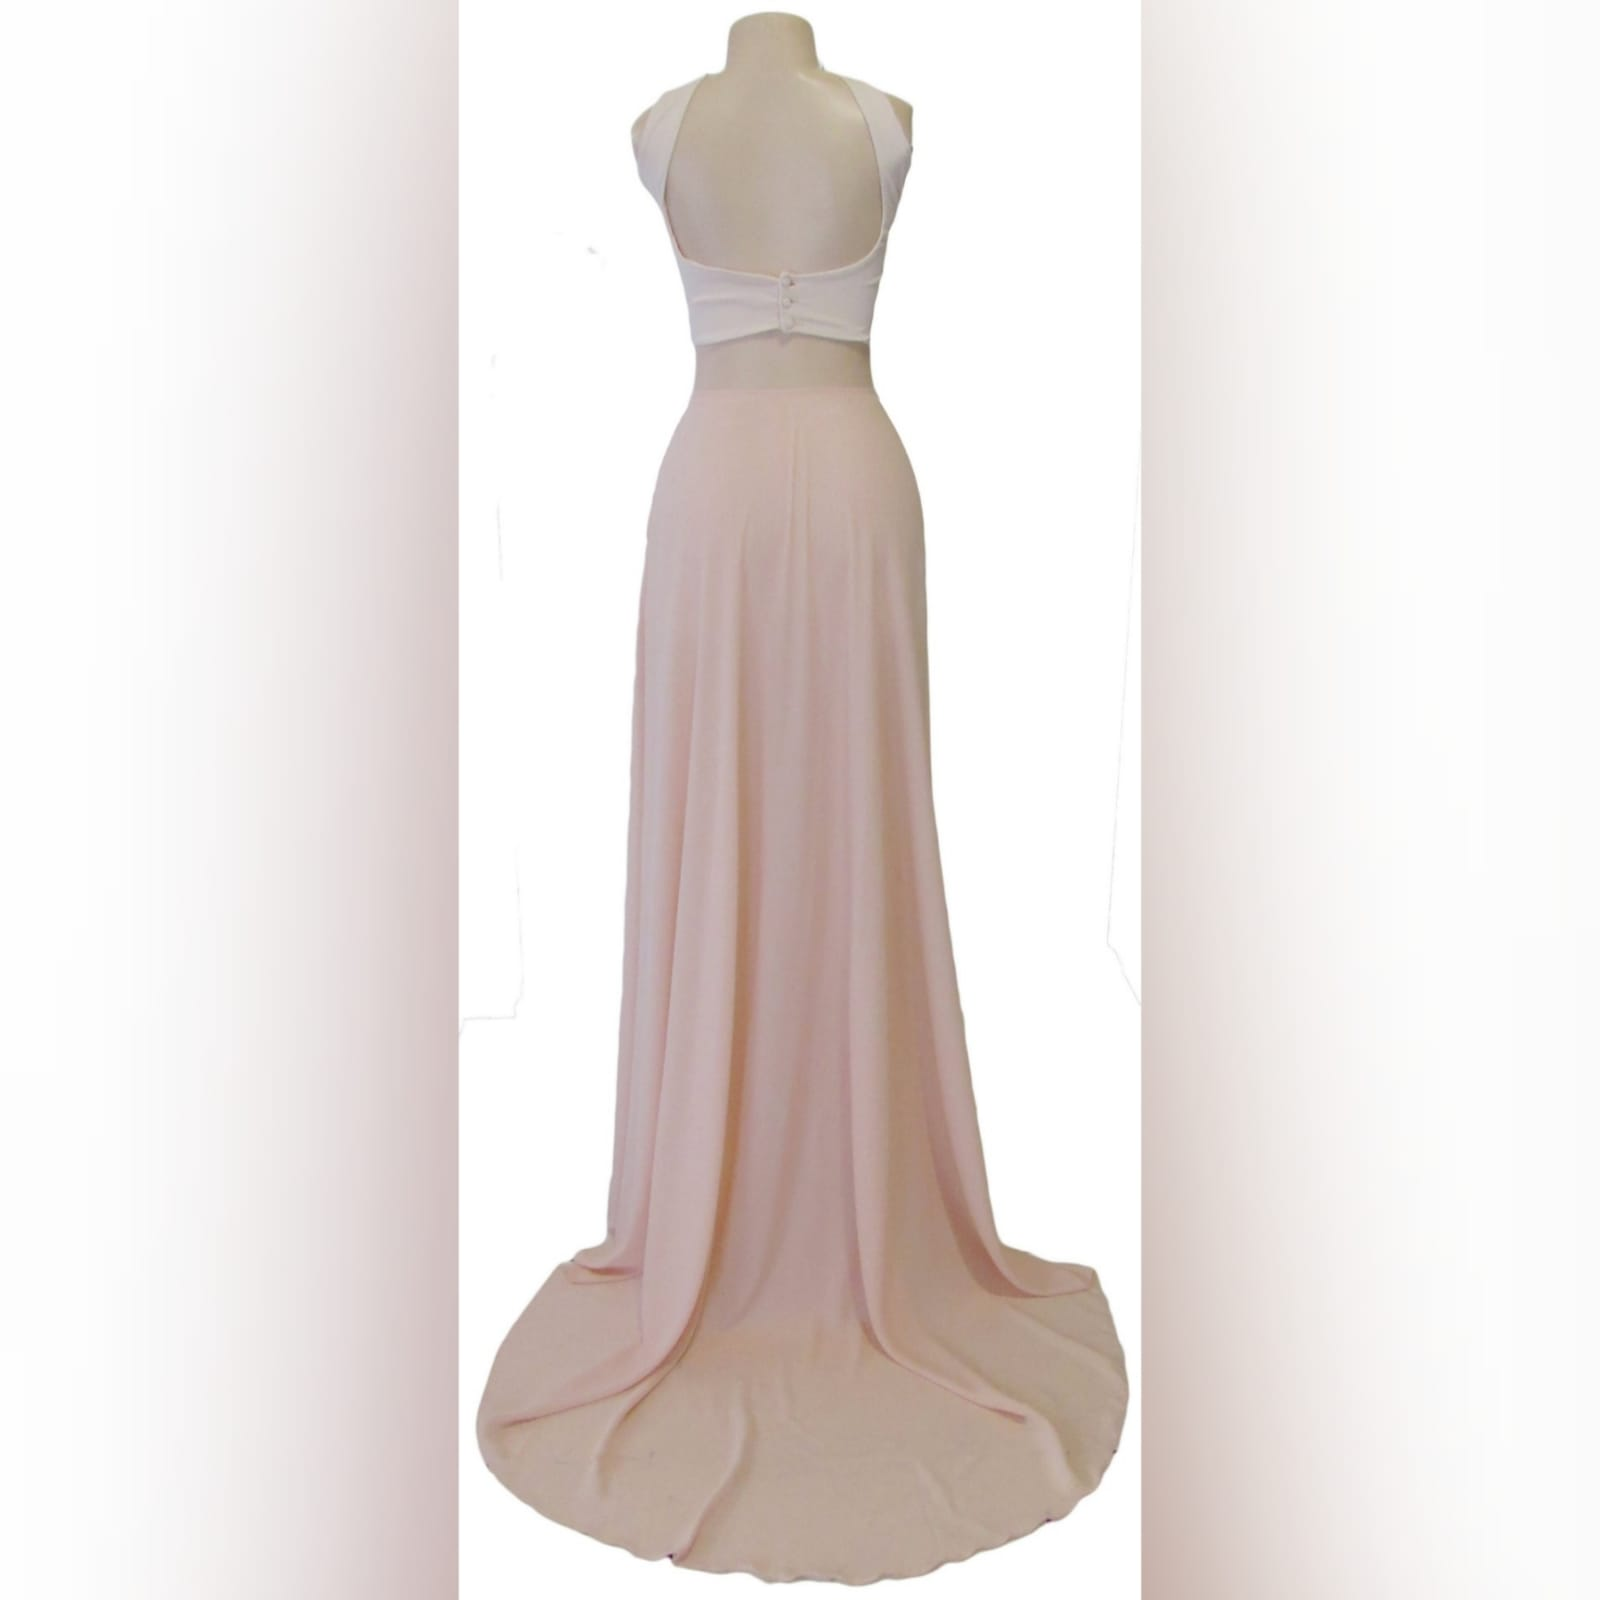 2 piece nude and white smart casual prom dress 6 2 piece nude and white smart casual prom dress. White crop top with a rounded neckline, low open back closed with buttons. Long chiffon skirt with a slit and a train.